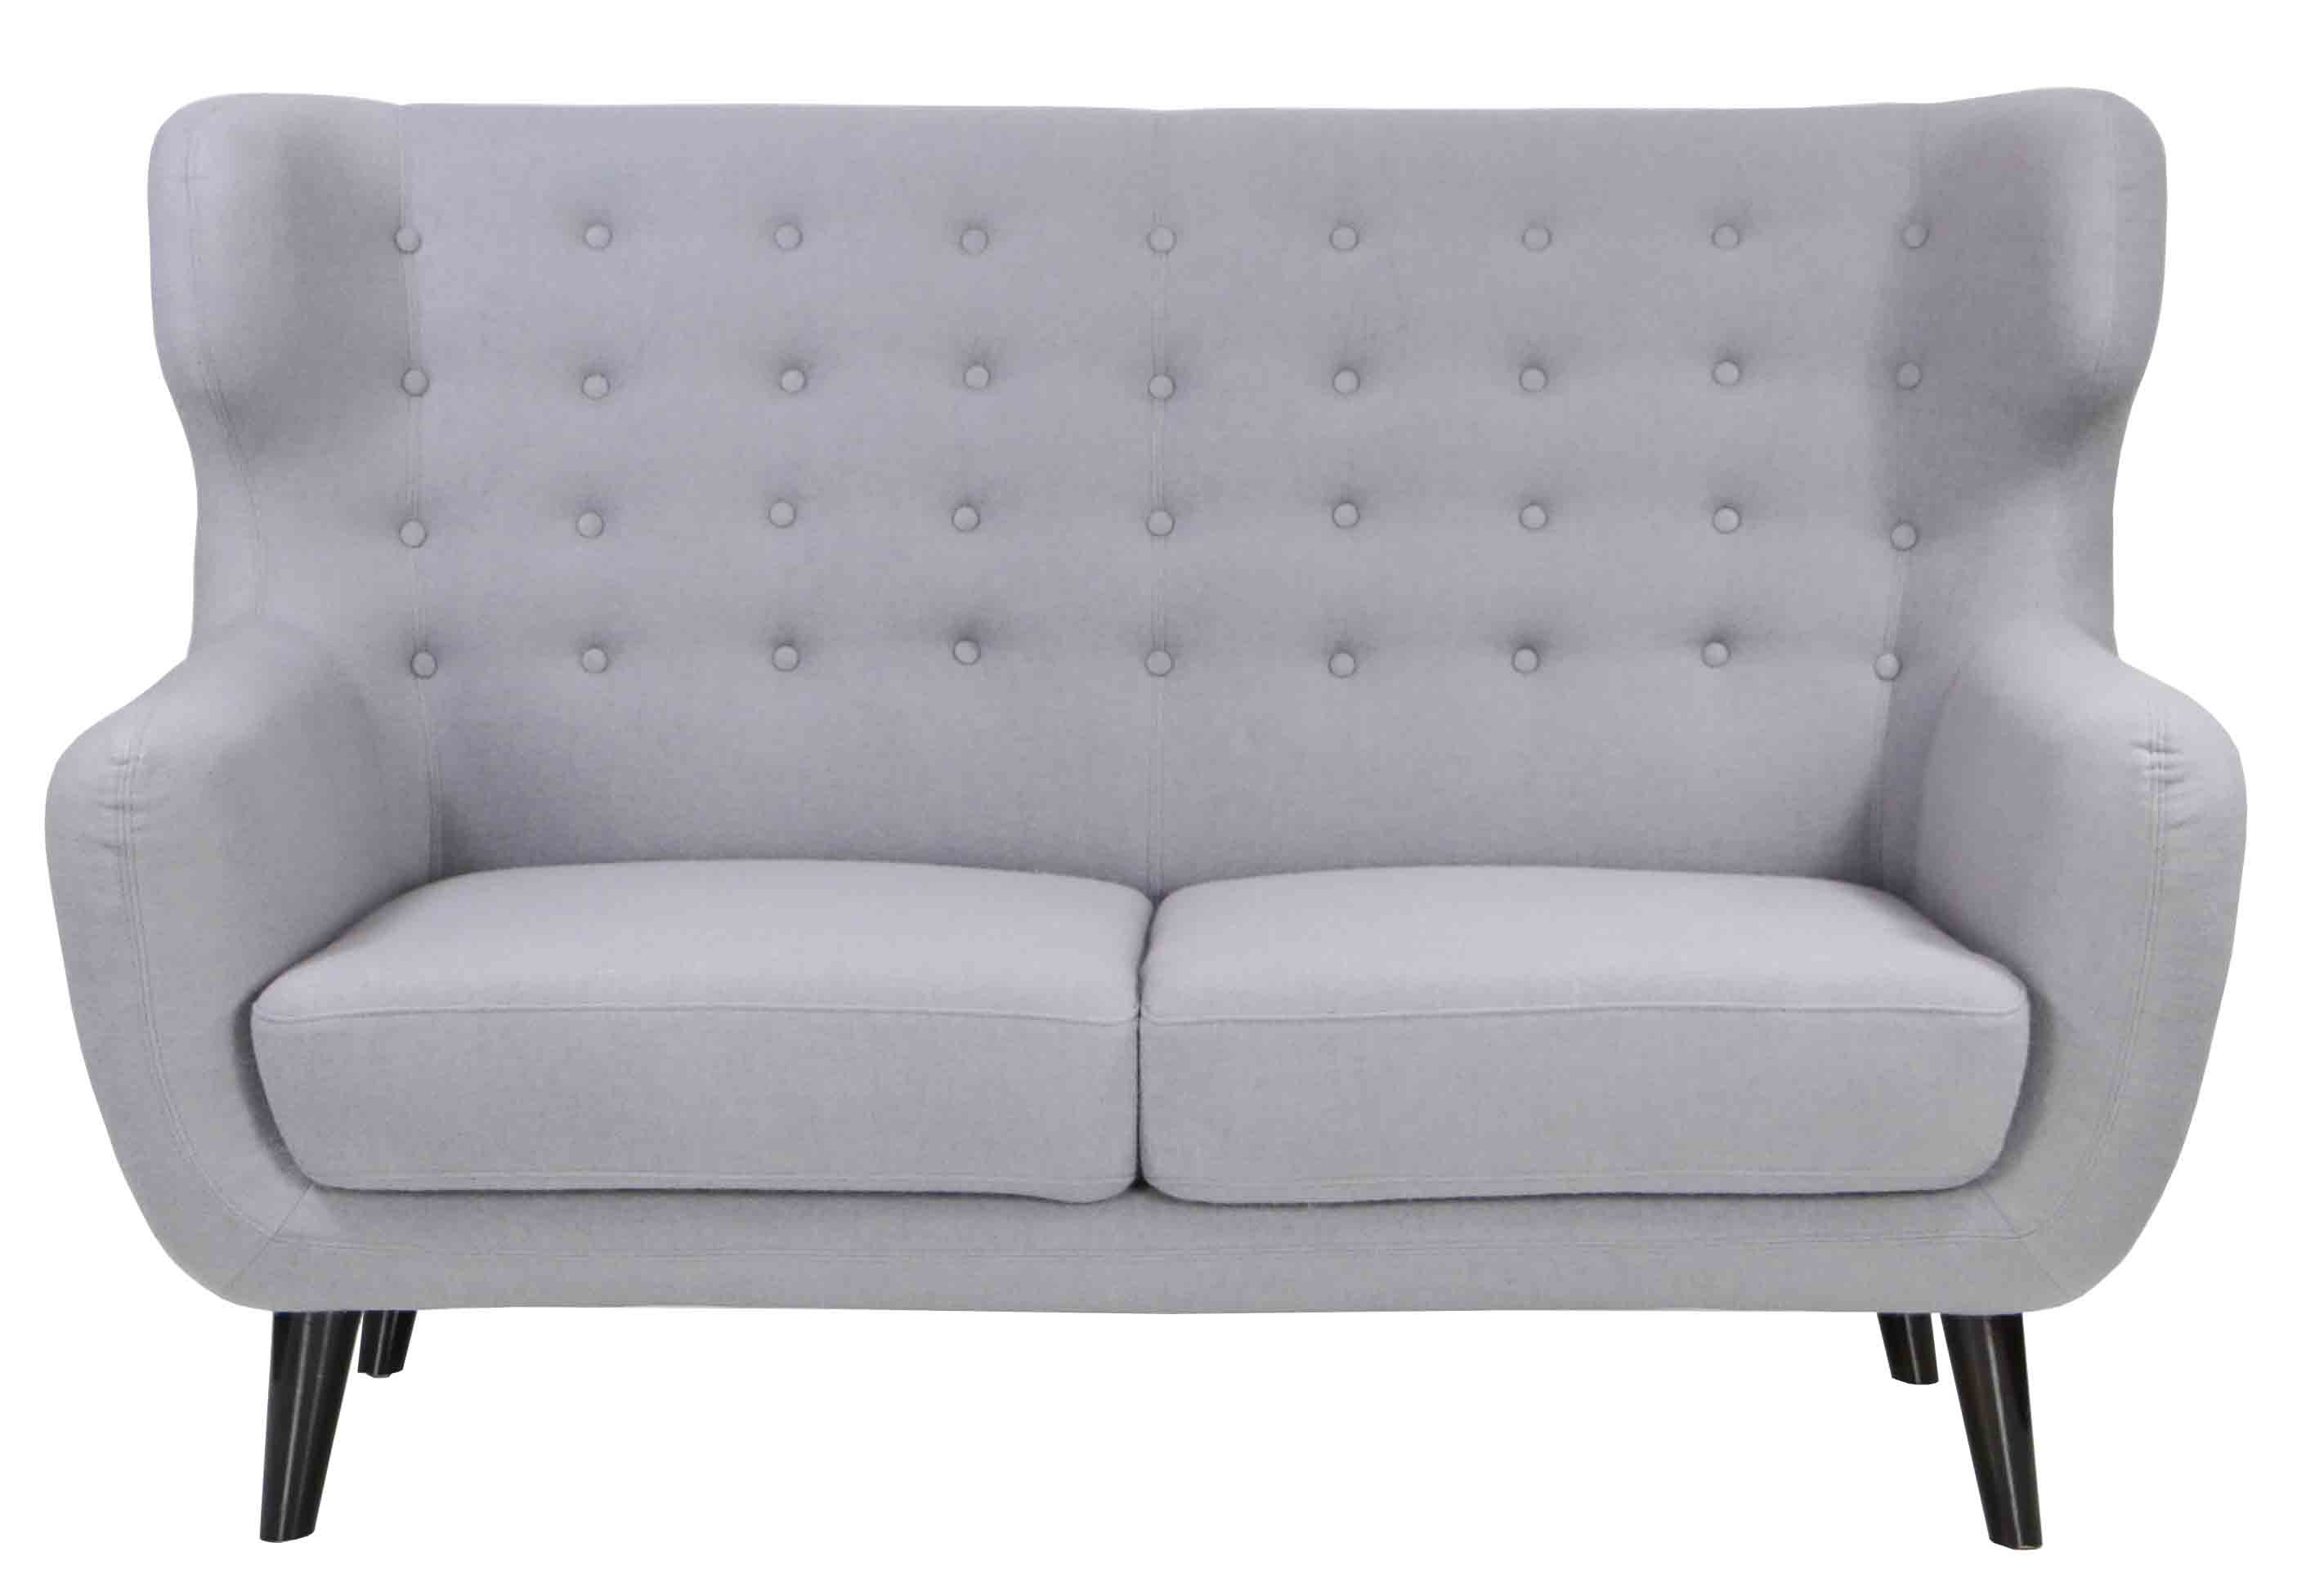 Replica wingback designer 2 seater sofa in light grey for Design sofa replica